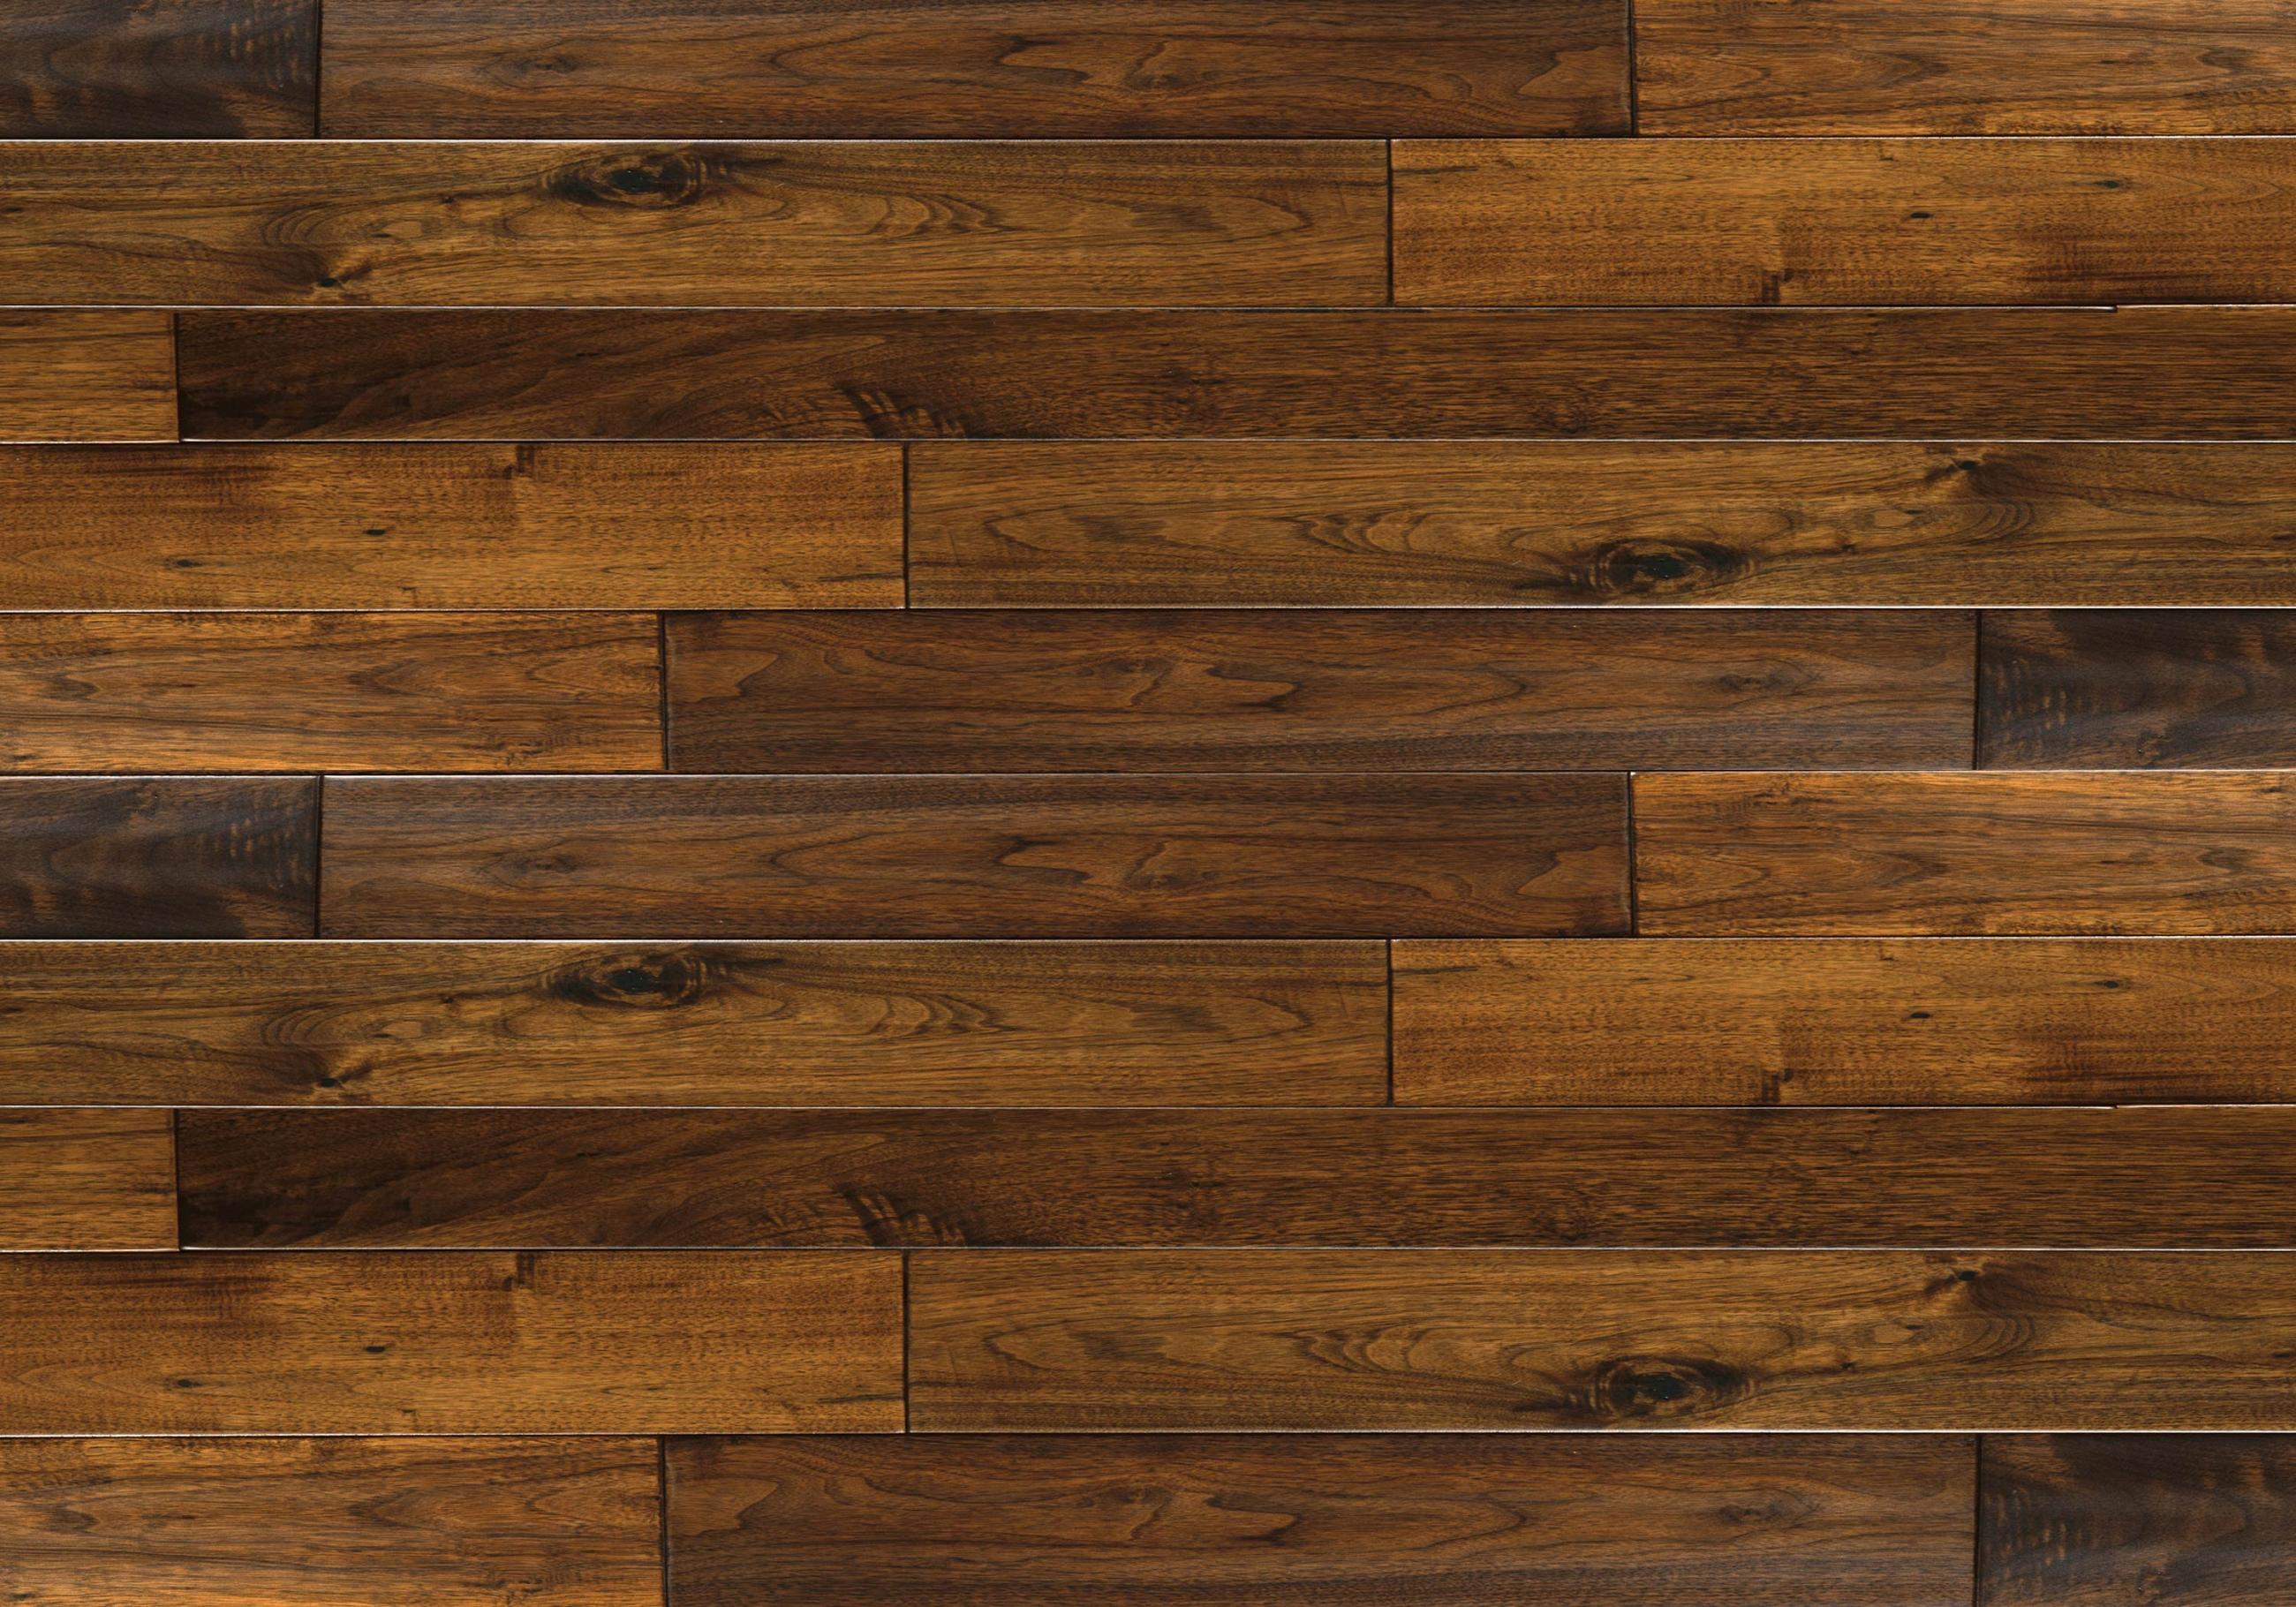 wood floor hardwood fun facts OLSOAEE